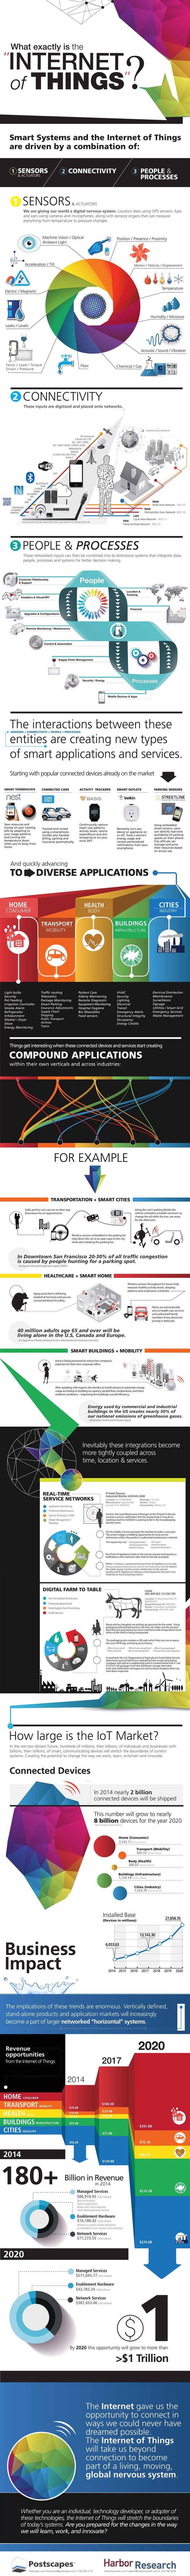 "What Exactly Is The ""Internet of Things""?  [by Postscapes and Harbor Research -- via #tipsographic]. More technology tips at tipsographic.com"